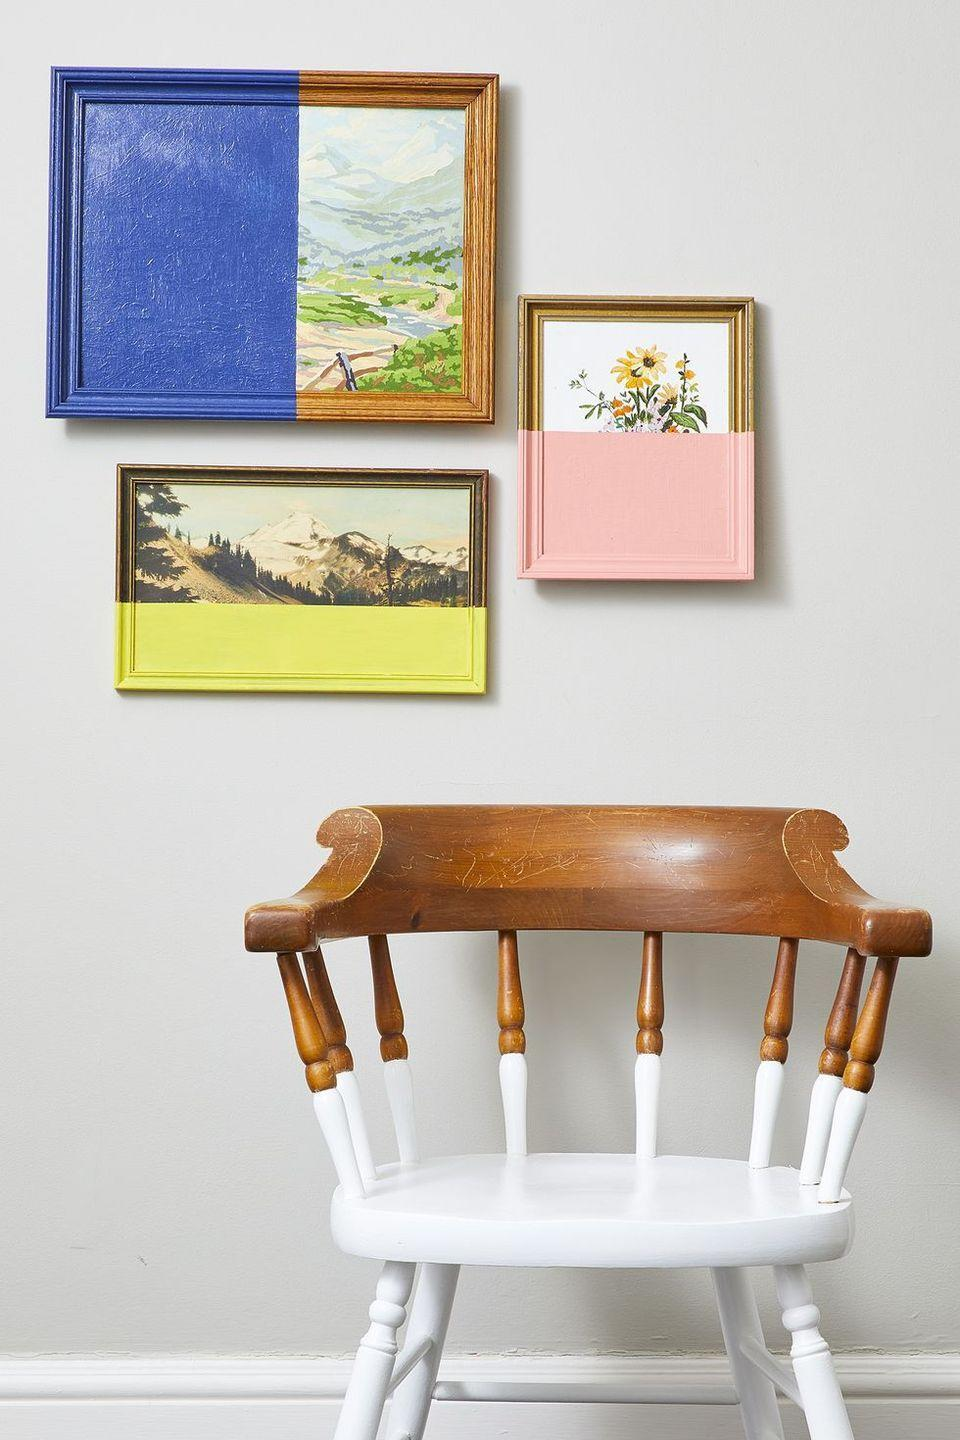 "<p>Go halfsies on paint in a variety of coordinating paint colors to turn garage-sale art into a bold colorblock display. </p><p><strong>RELATED: </strong><a href=""https://www.goodhousekeeping.com/home/craft-ideas/how-to/g139/genius-upcycling-ideas/"" rel=""nofollow noopener"" target=""_blank"" data-ylk=""slk:Easy Trash-to-Treasure Crafts"" class=""link rapid-noclick-resp"">Easy Trash-to-Treasure Crafts </a></p>"